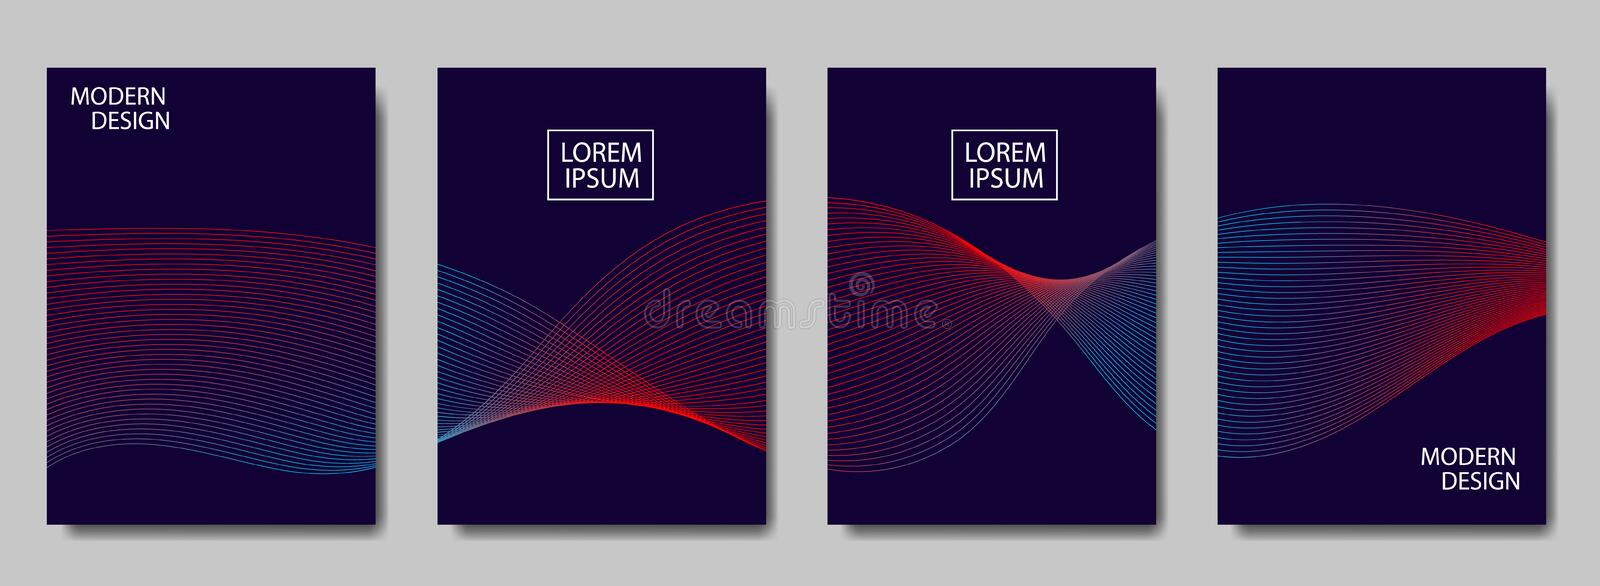 Colorful halftone lines wave cover of page layouts design. Modern design cover with halftone gradients. Vector dynamic poster royalty free illustration